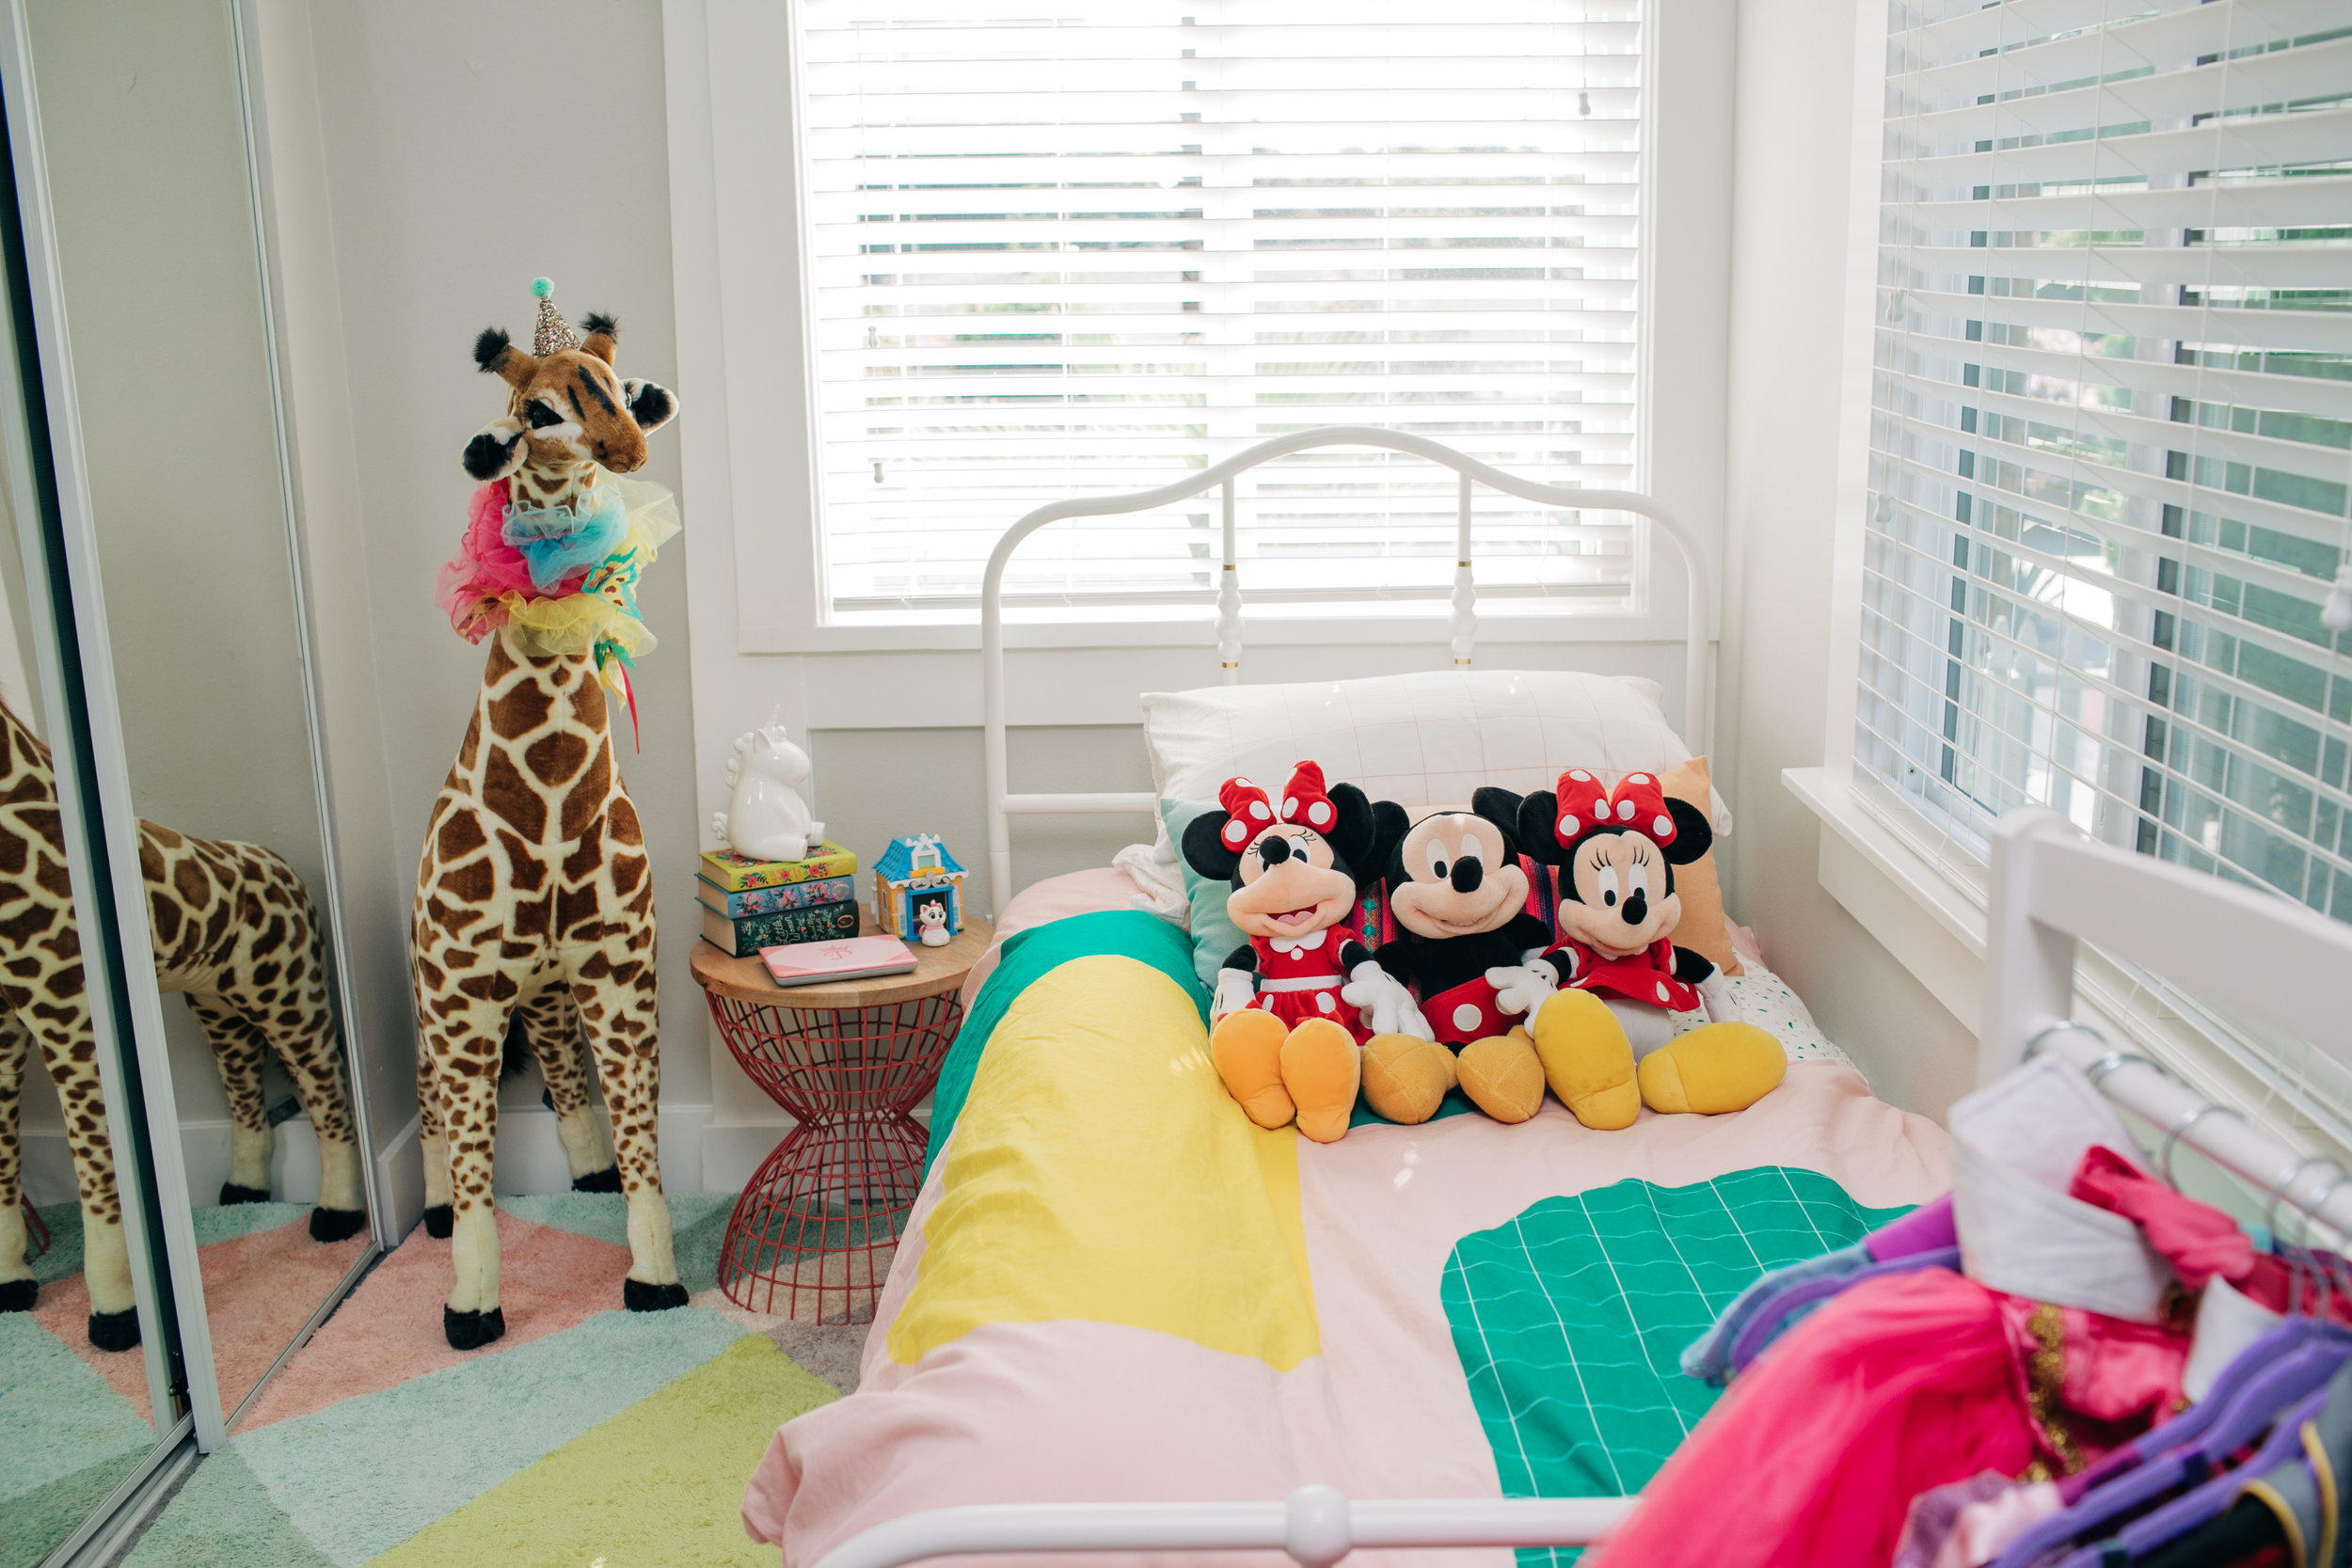 Earlier this year we finally swapped out Mila's toddler bed for a twin bed. This one we bought from Ikea. The fun bedding is from Ikea as well. We always keep the Mickey and Minnies on her bed. The Mickey we bought when we had Ryan. One Minnie we bought when we had Mila. The third Minnie we bought and used to reveal we are having another girl.